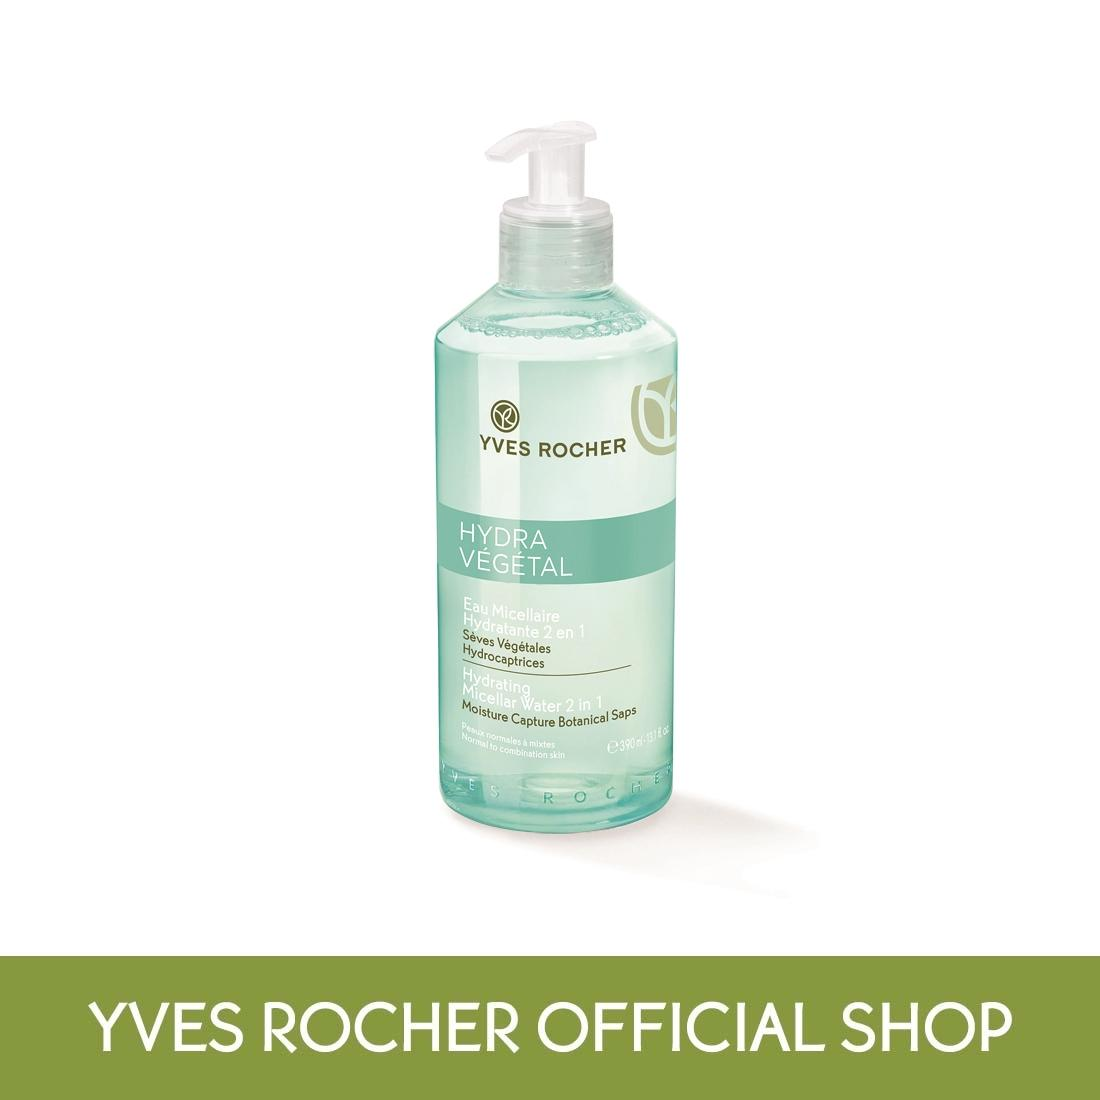 Discount Yves Rocher Hydra Vegetal Hydrating Micellar Water 2 In 1 390Ml Singapore